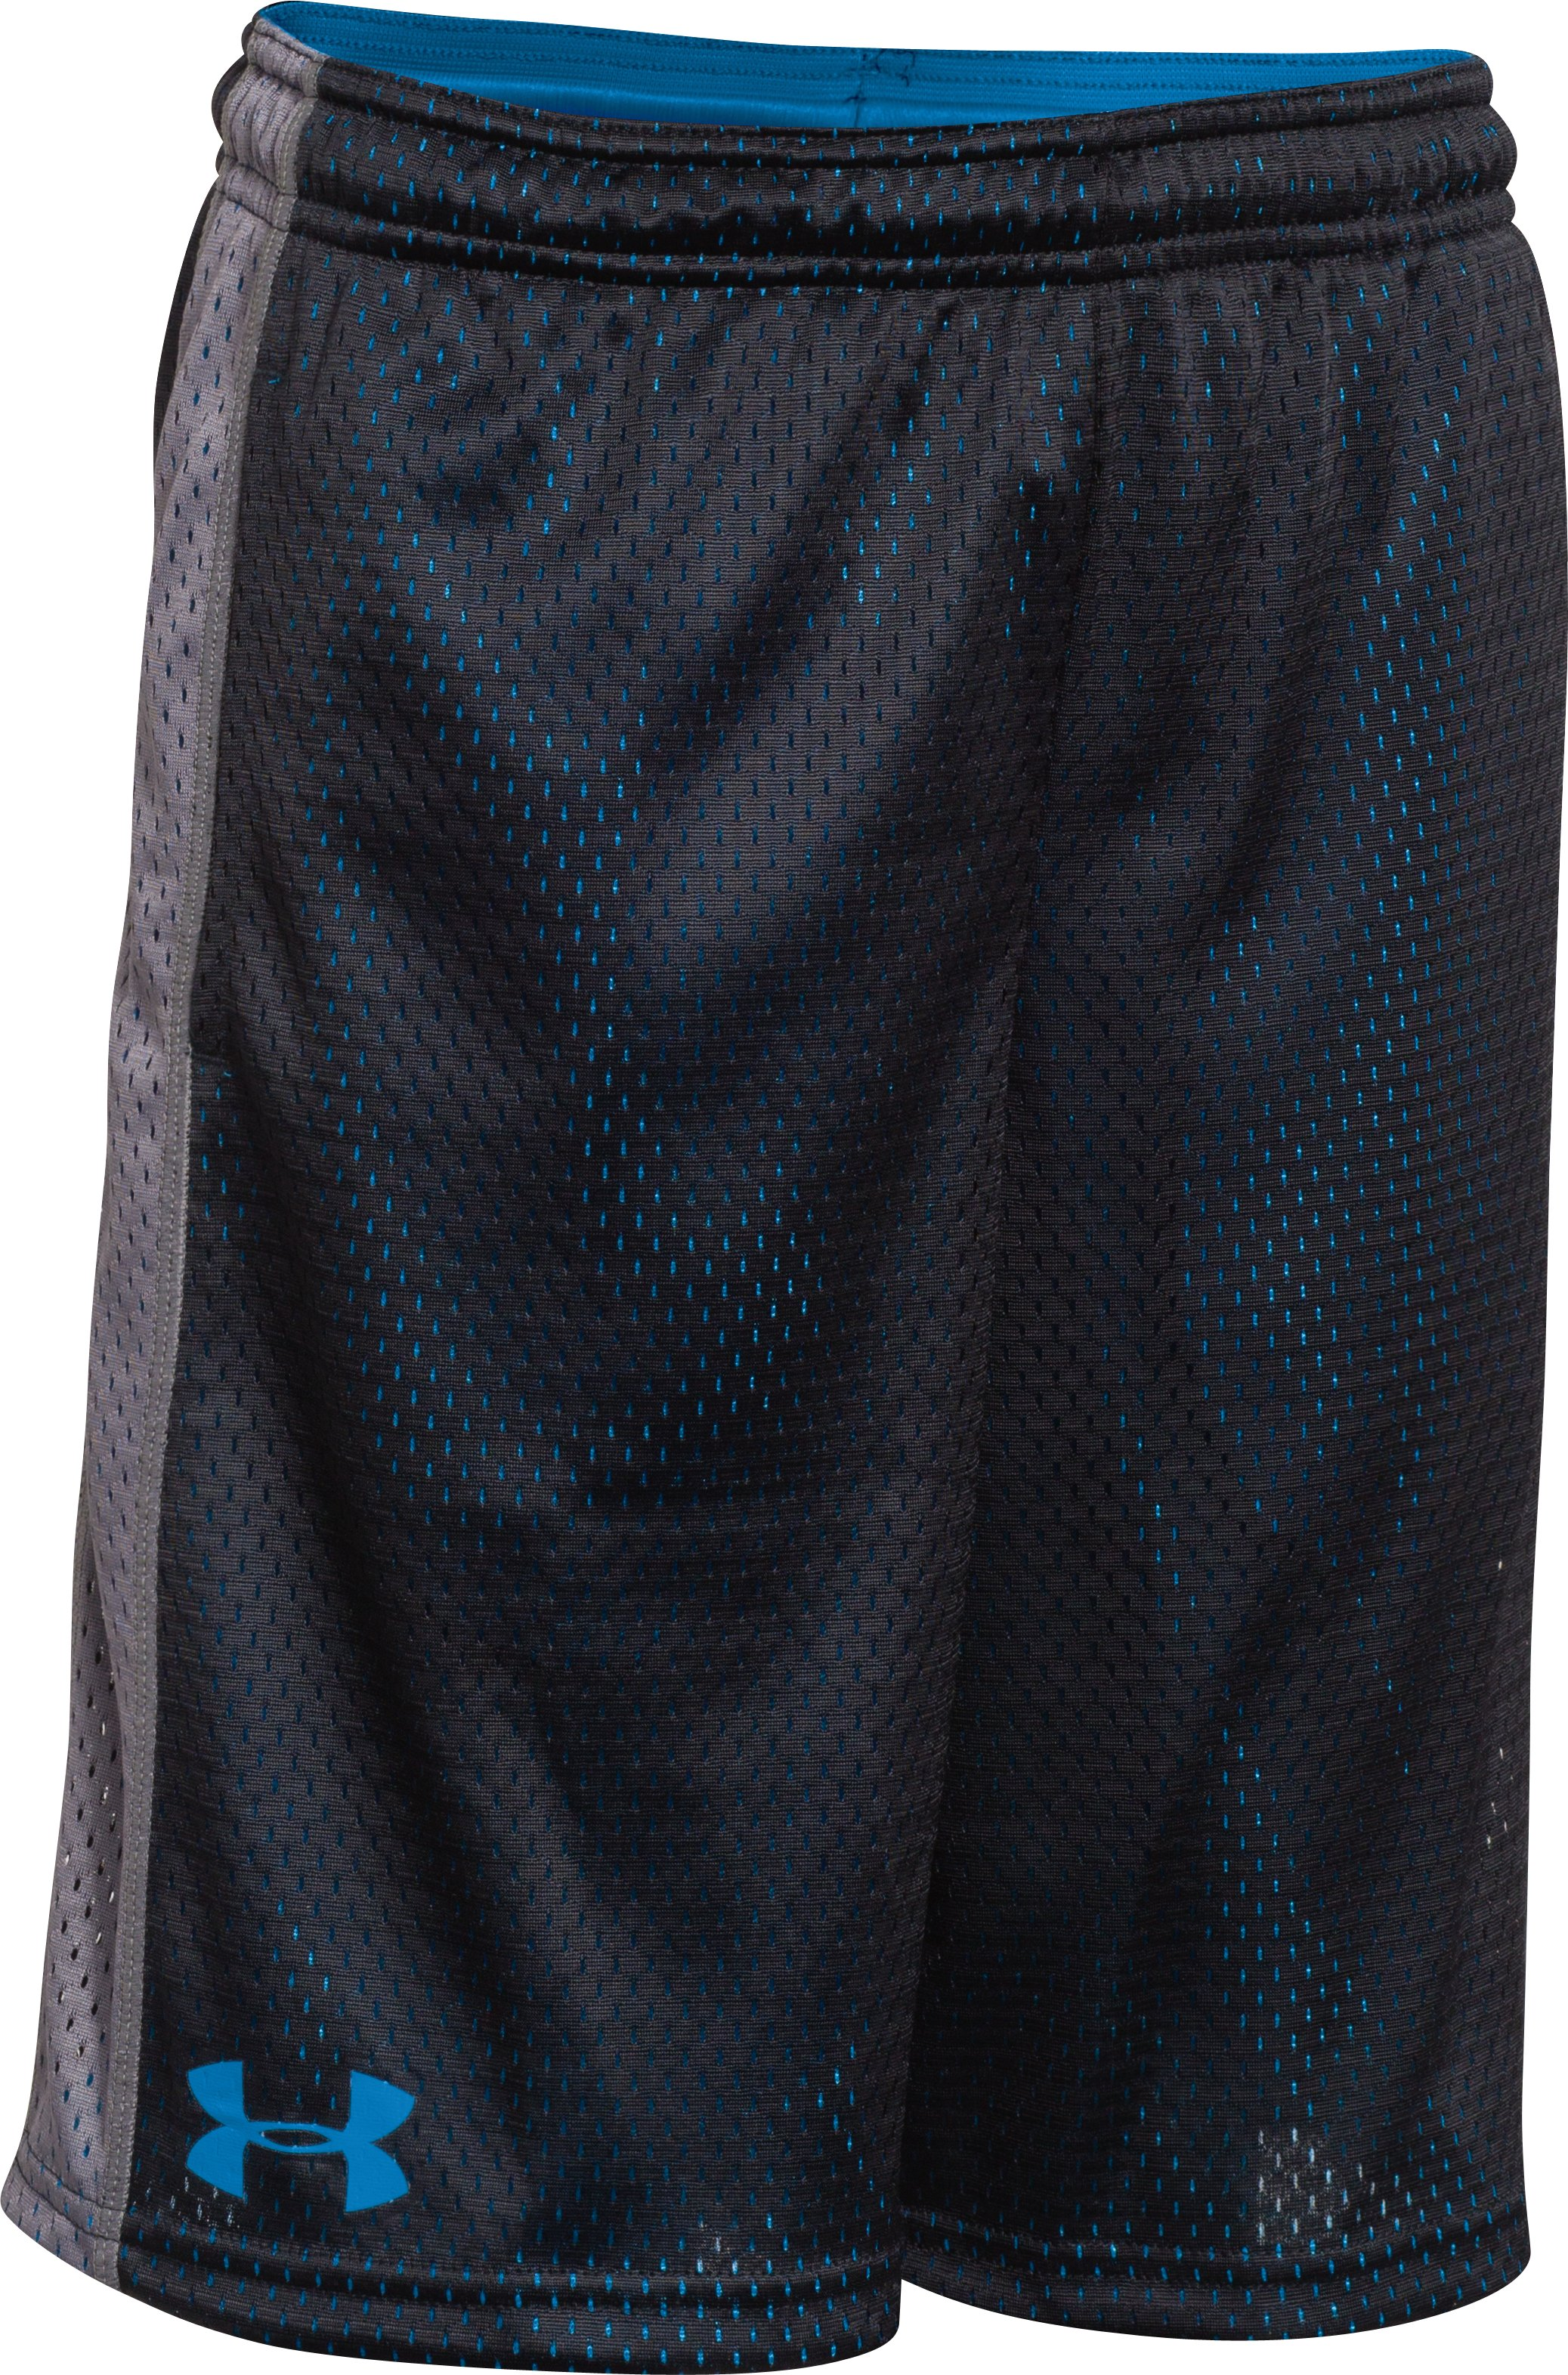 Boys' UA Dominate Shorts, Black